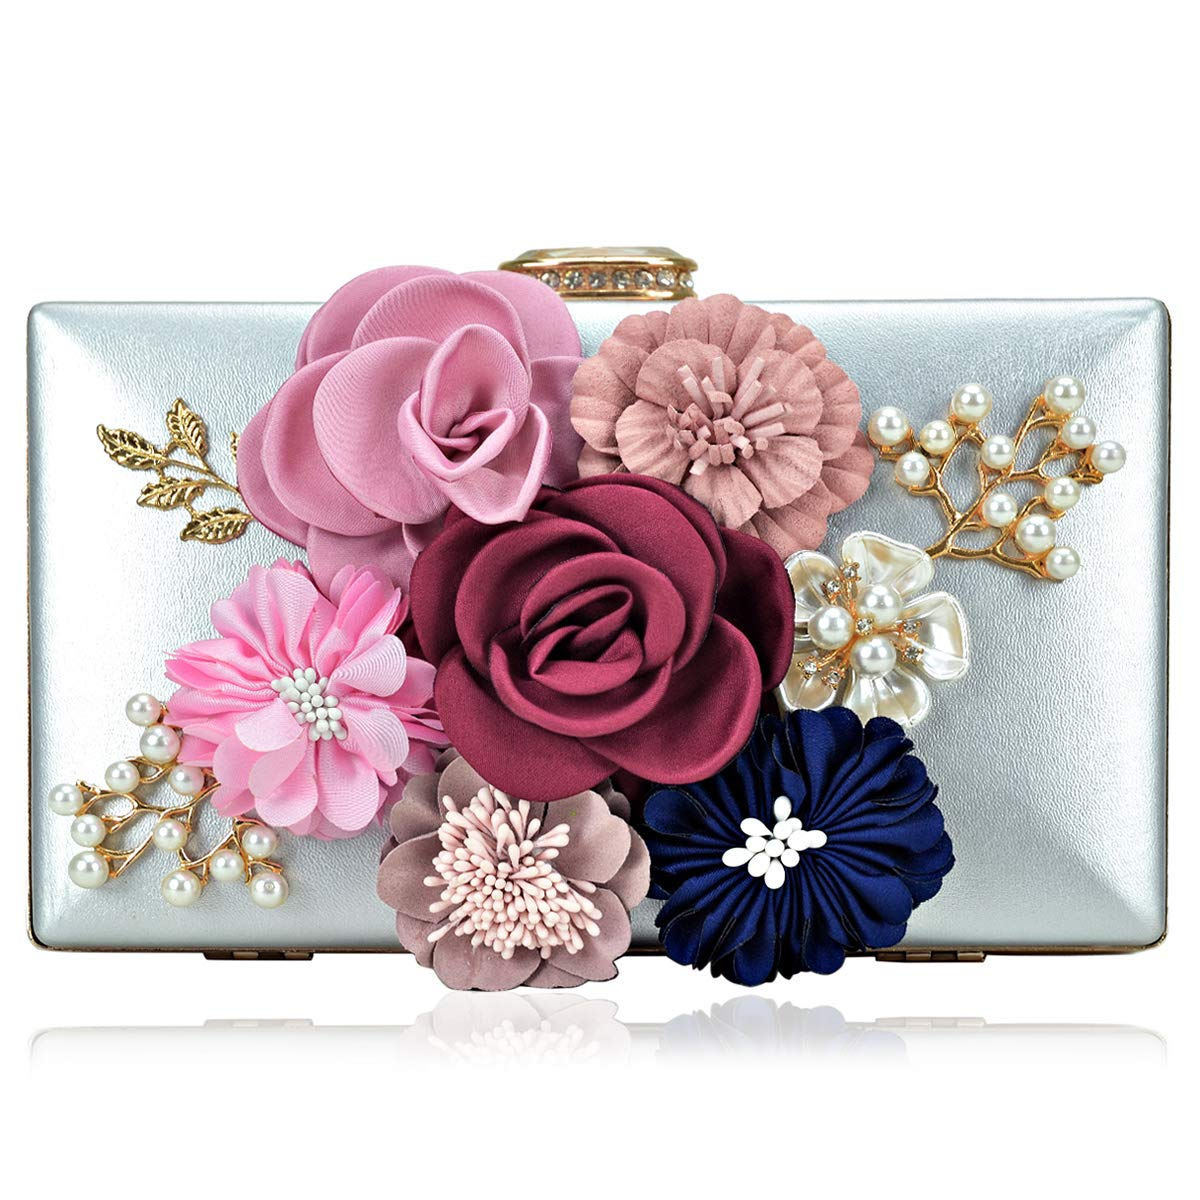 Women Flower Clutches Handbags Evening Bags Prom Party Wedding Cocktail Clutch Purses with Pearls Beaded